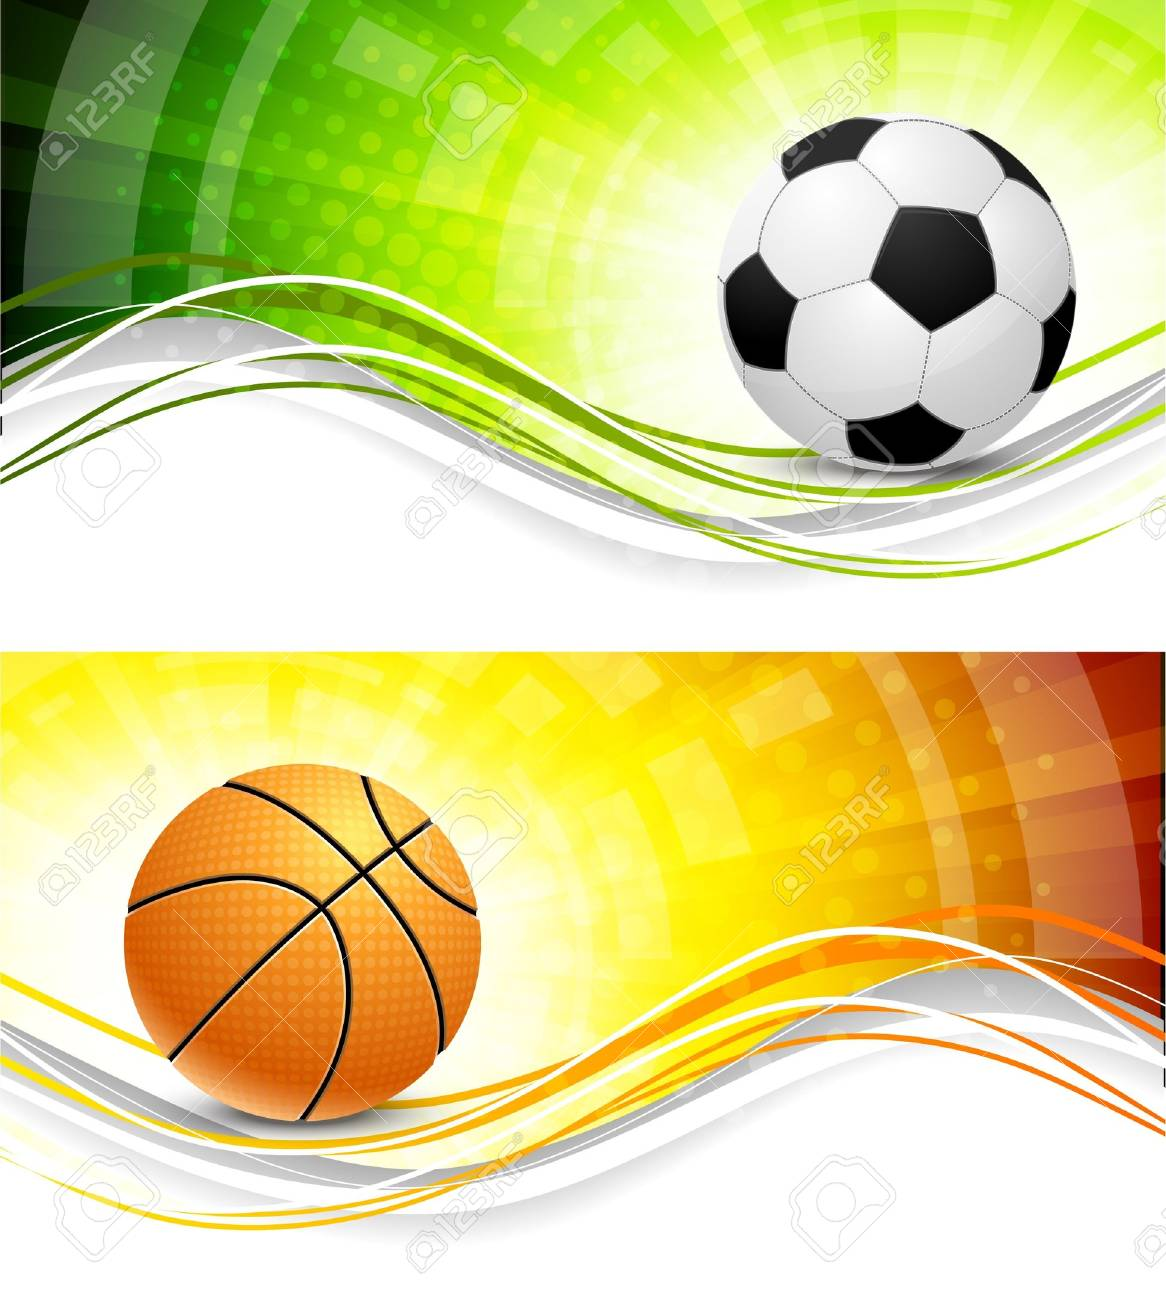 Sport banners Stock Photo - 10709416